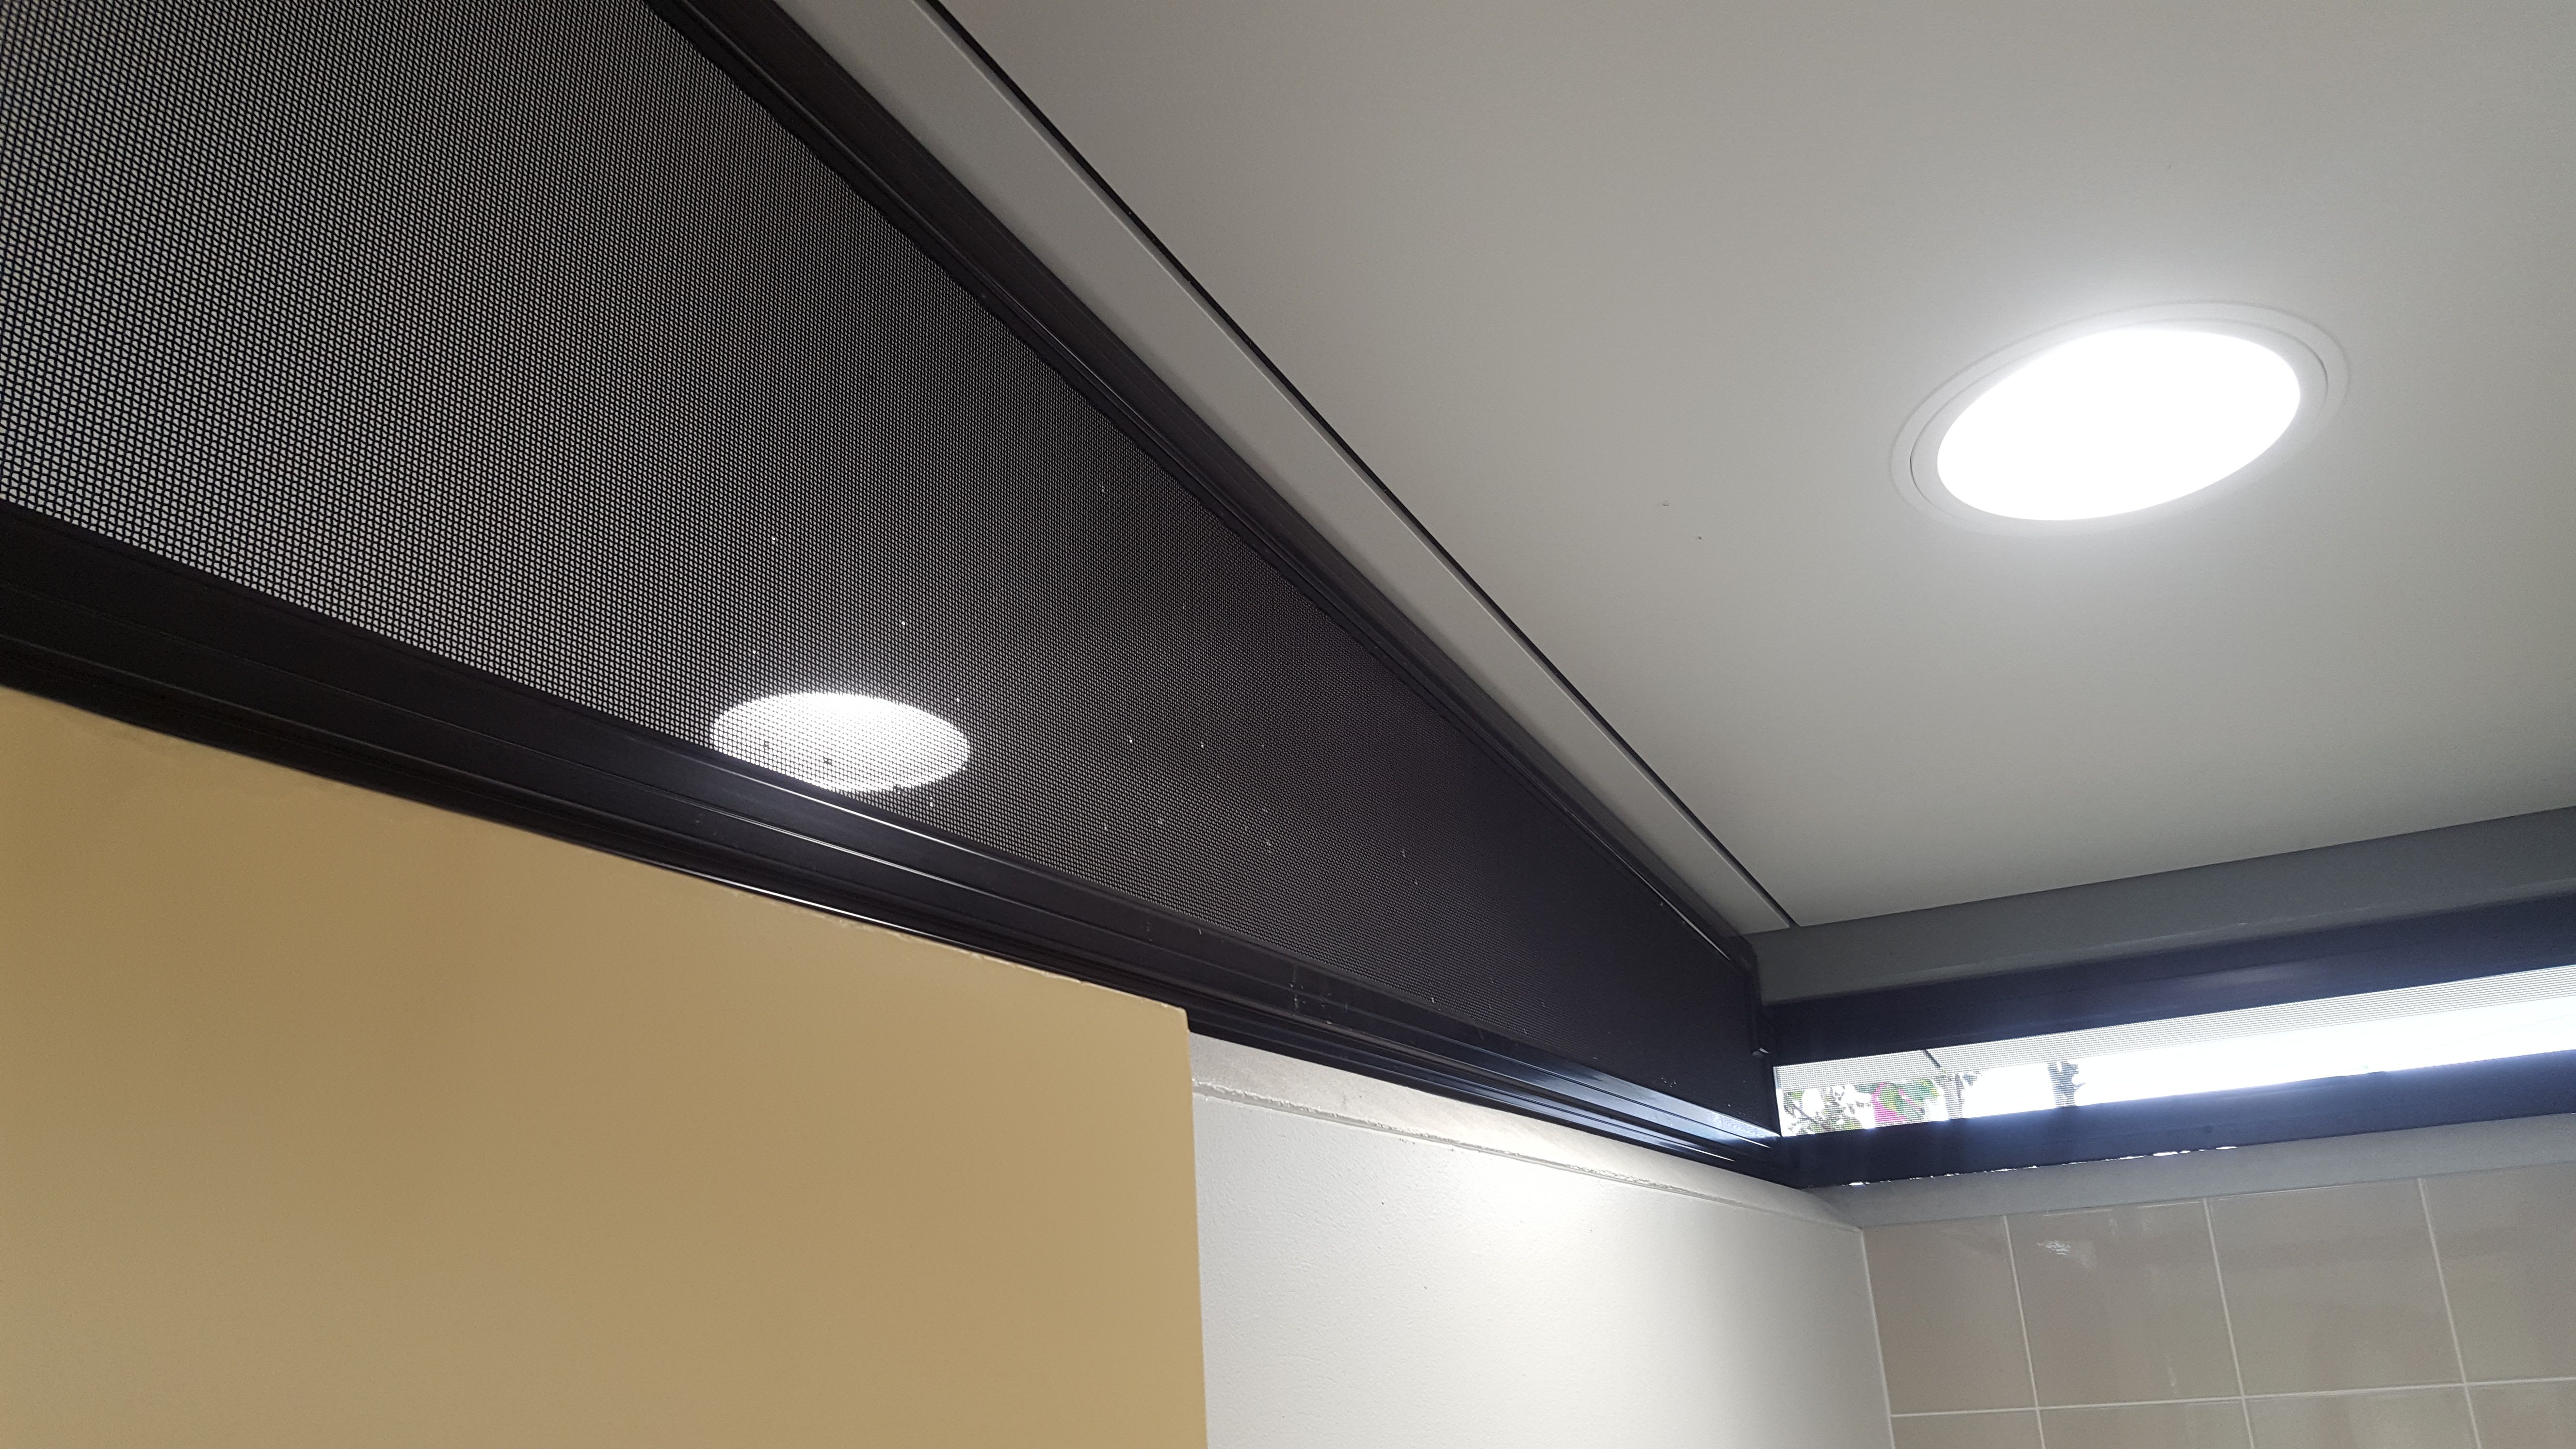 Crimsafe Is Much More Than Just A Security Screen Look Up When You Visit The City Of Gold Coast Amenities Facili Ceiling Lights Security Screen Runaway Bay